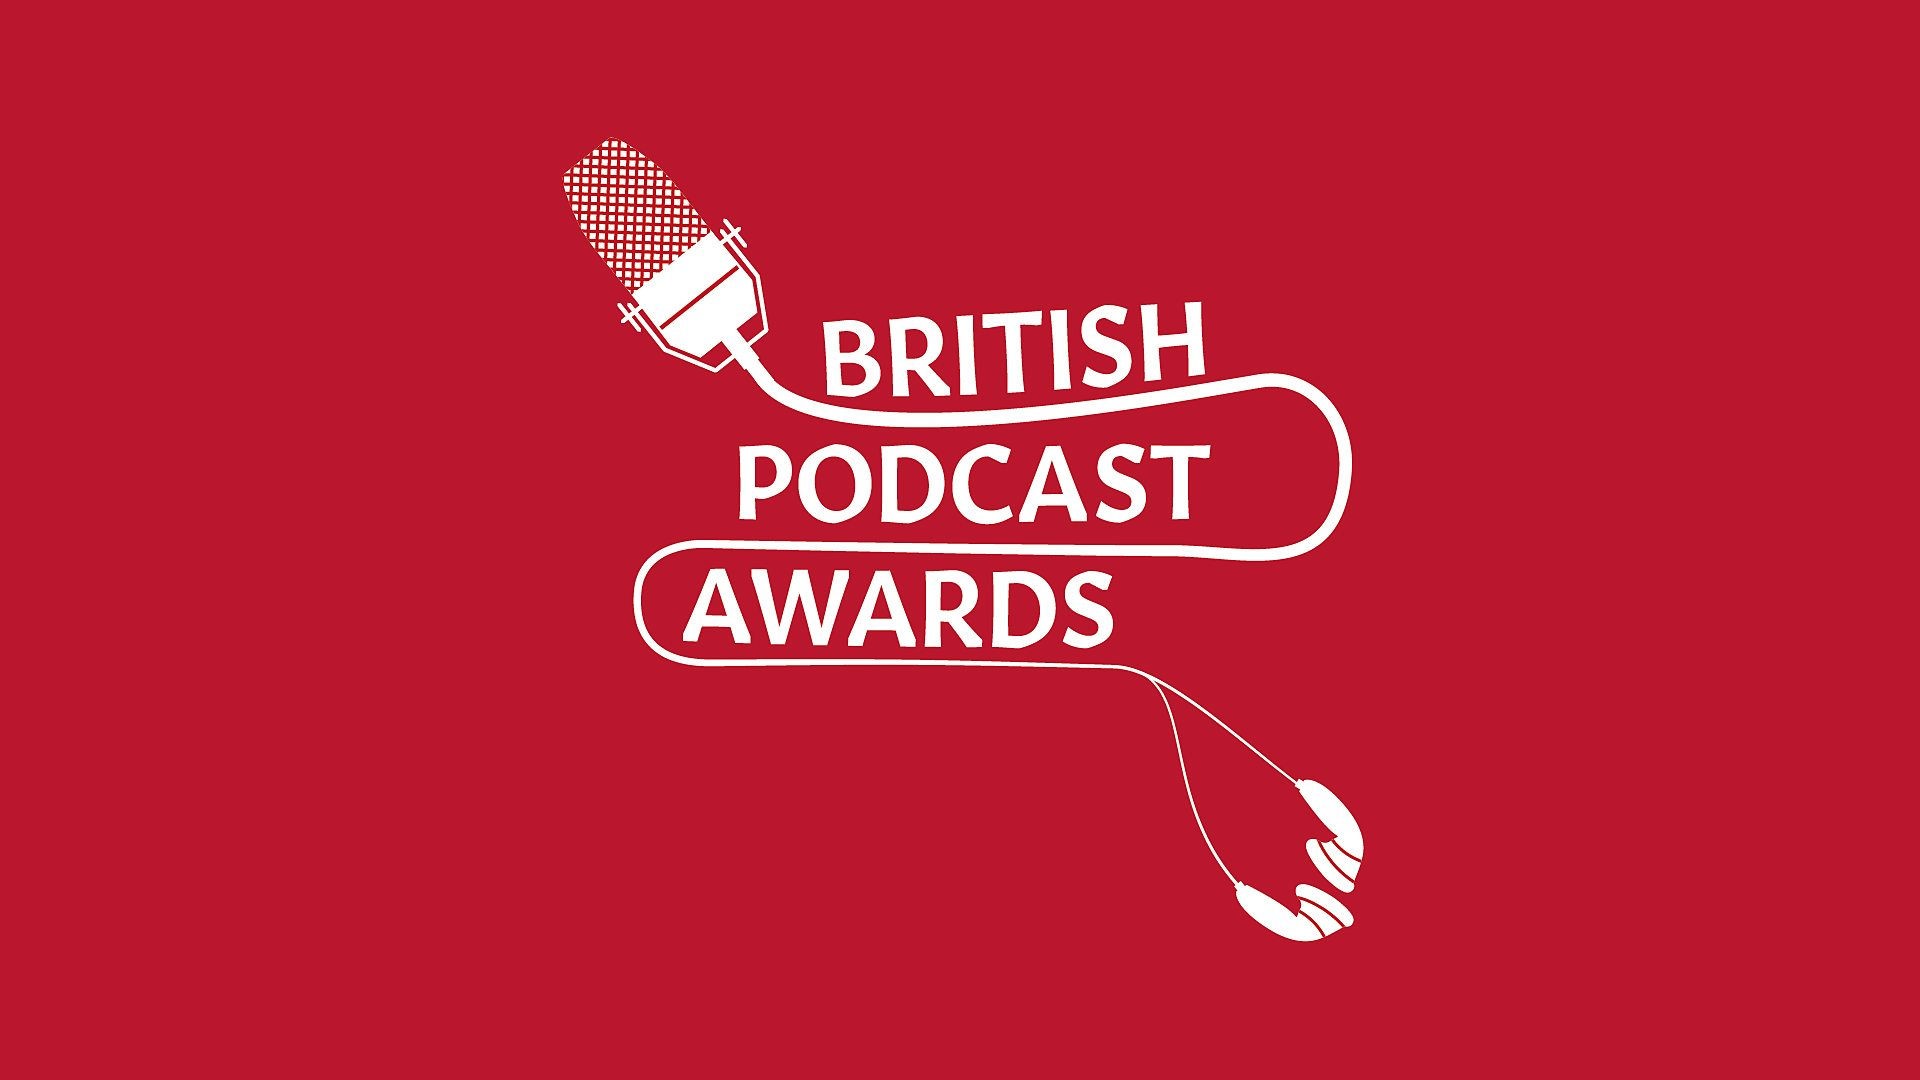 british podcast awards 2021